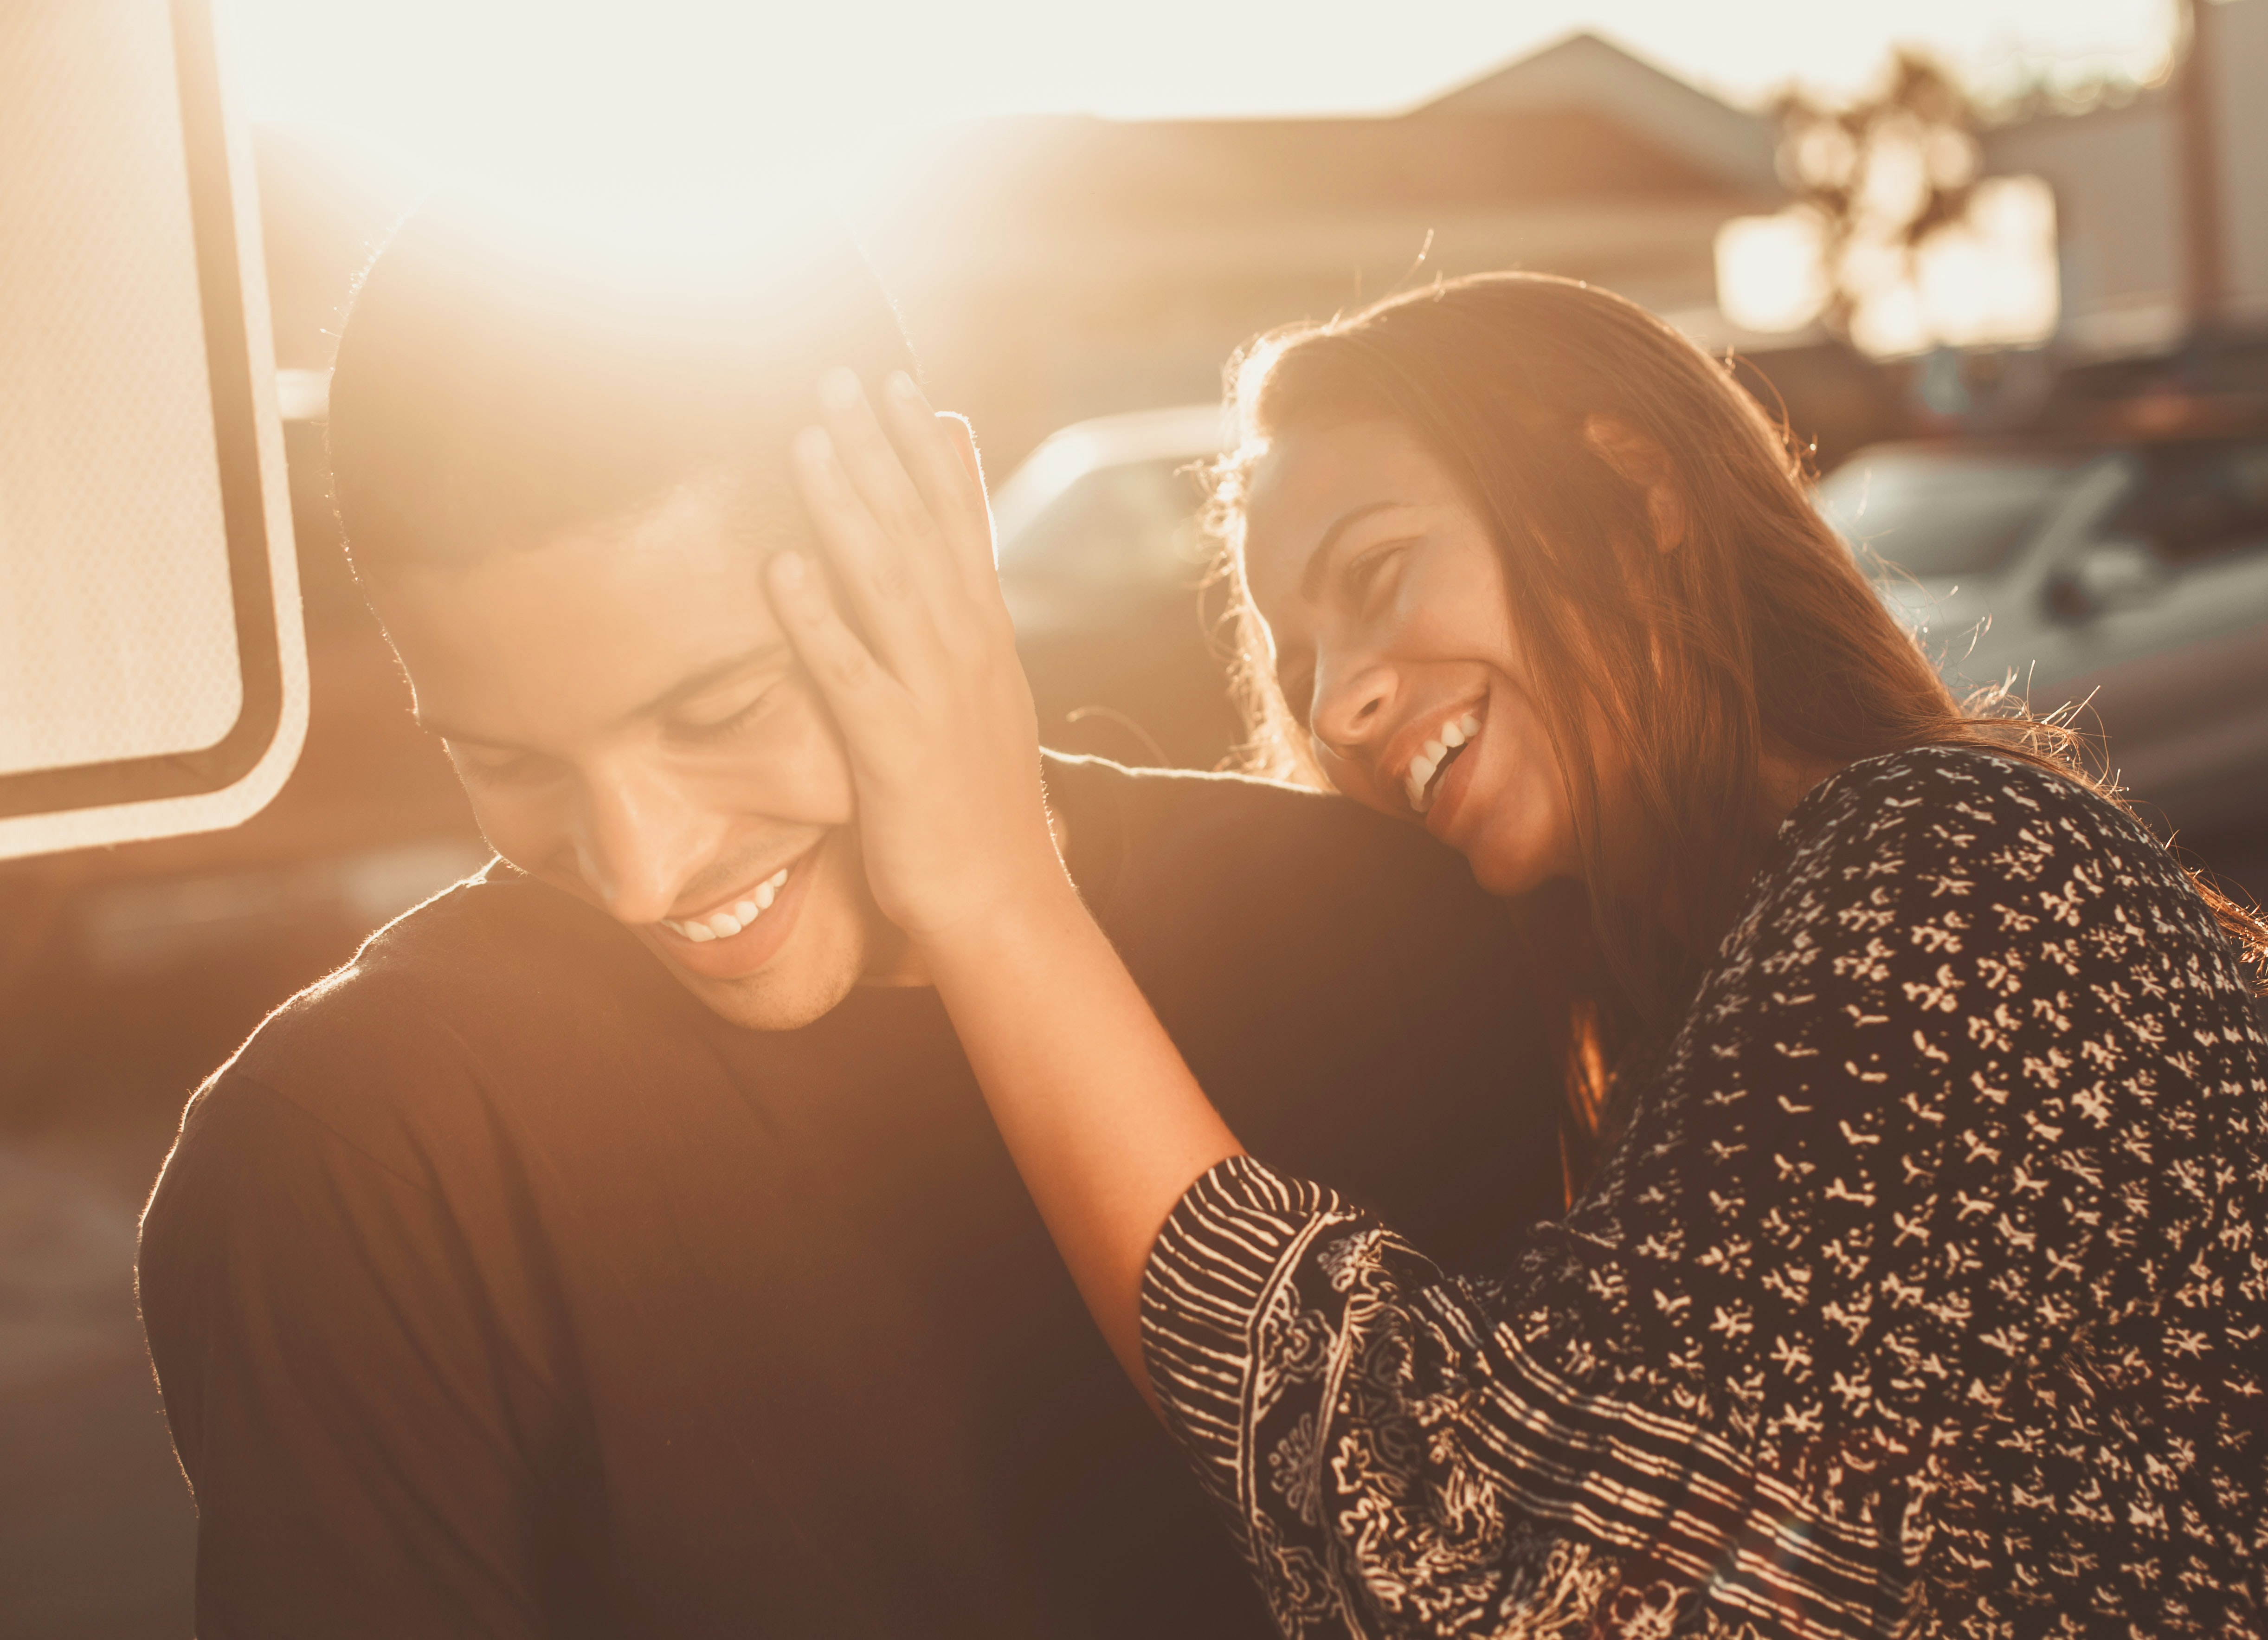 How to return to love when you worry he still loves his ex.